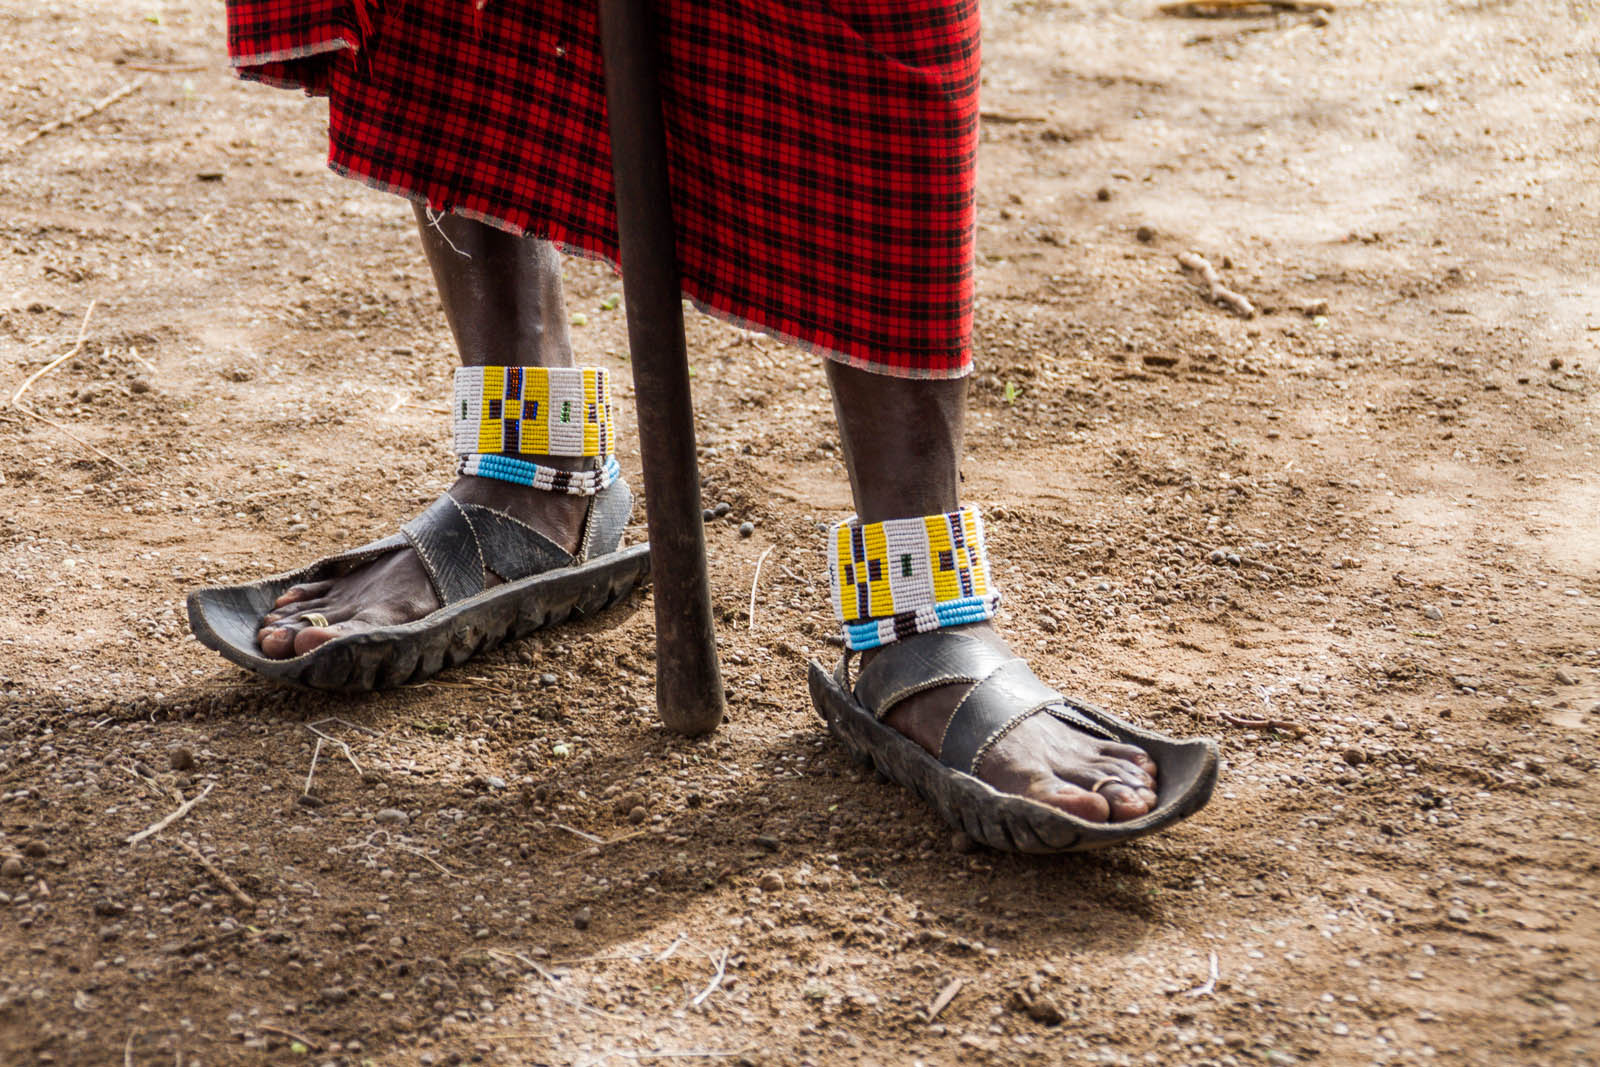 Maasai-traditional-footwear